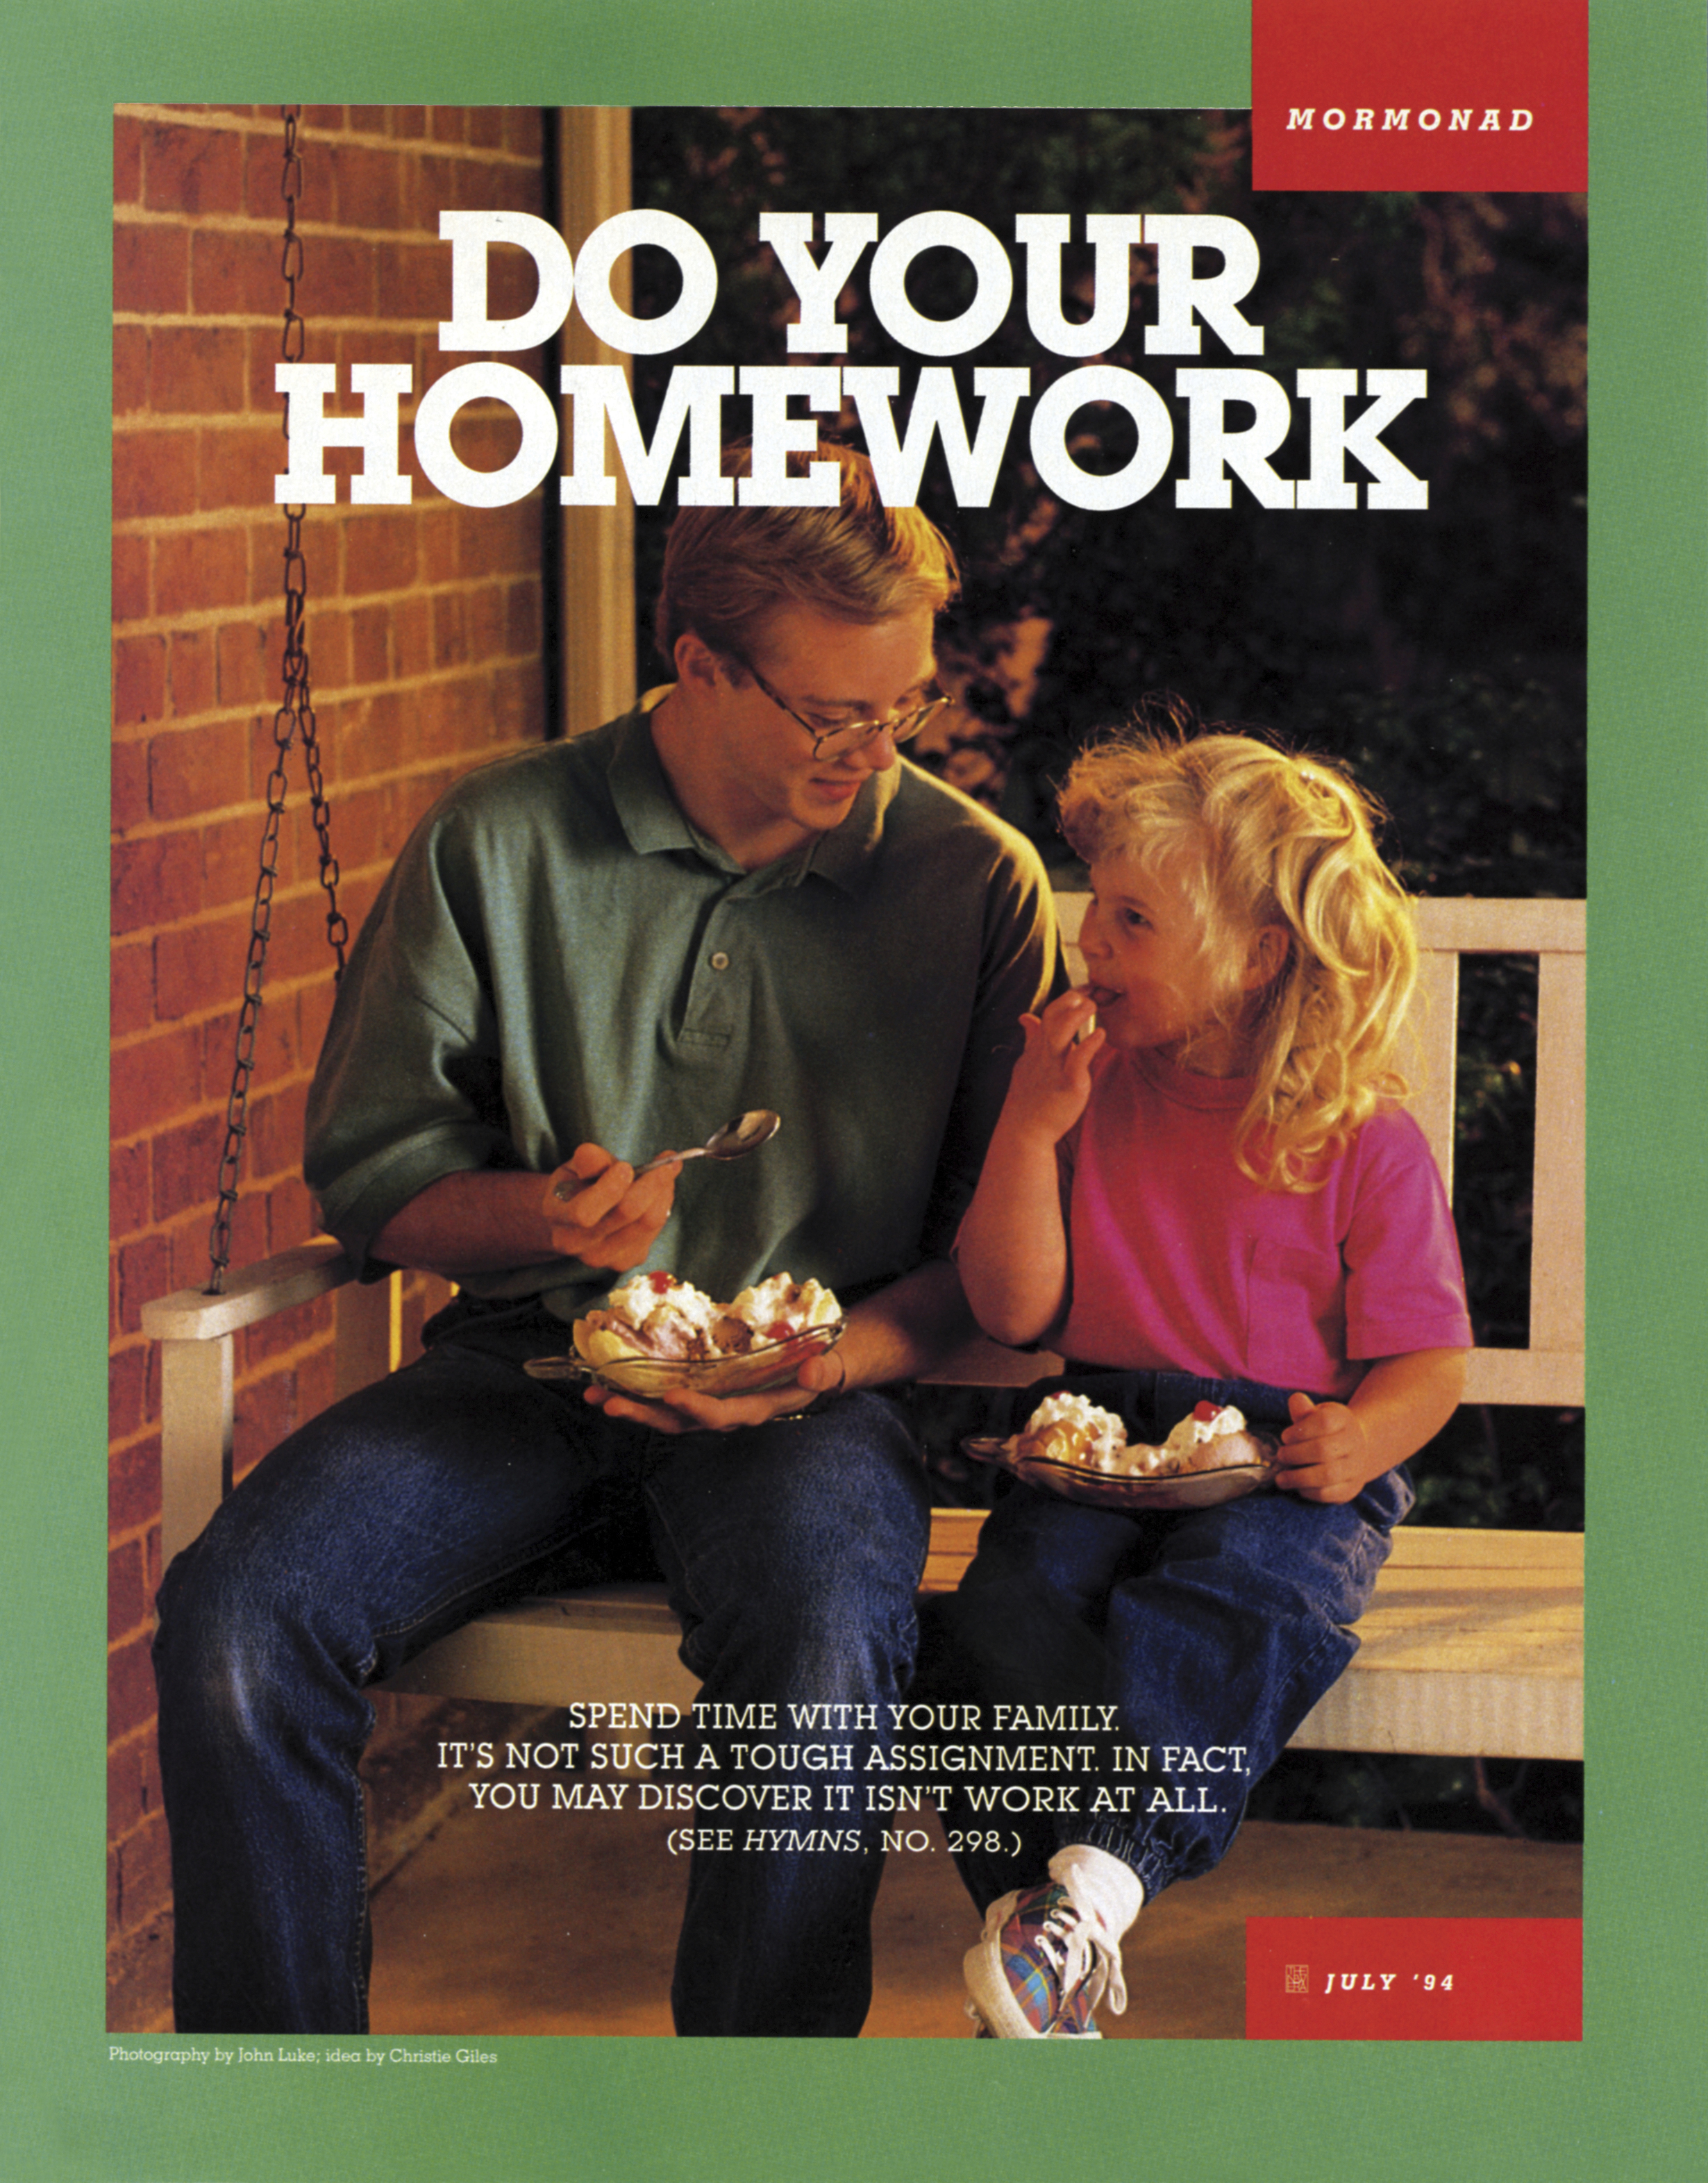 Do Your Homework. Spend time with your family. It's not such a tough assignment. In fact, you may discover it isn't work at all. (See Hymns, no. 298.) July 1994 © undefined ipCode 1.